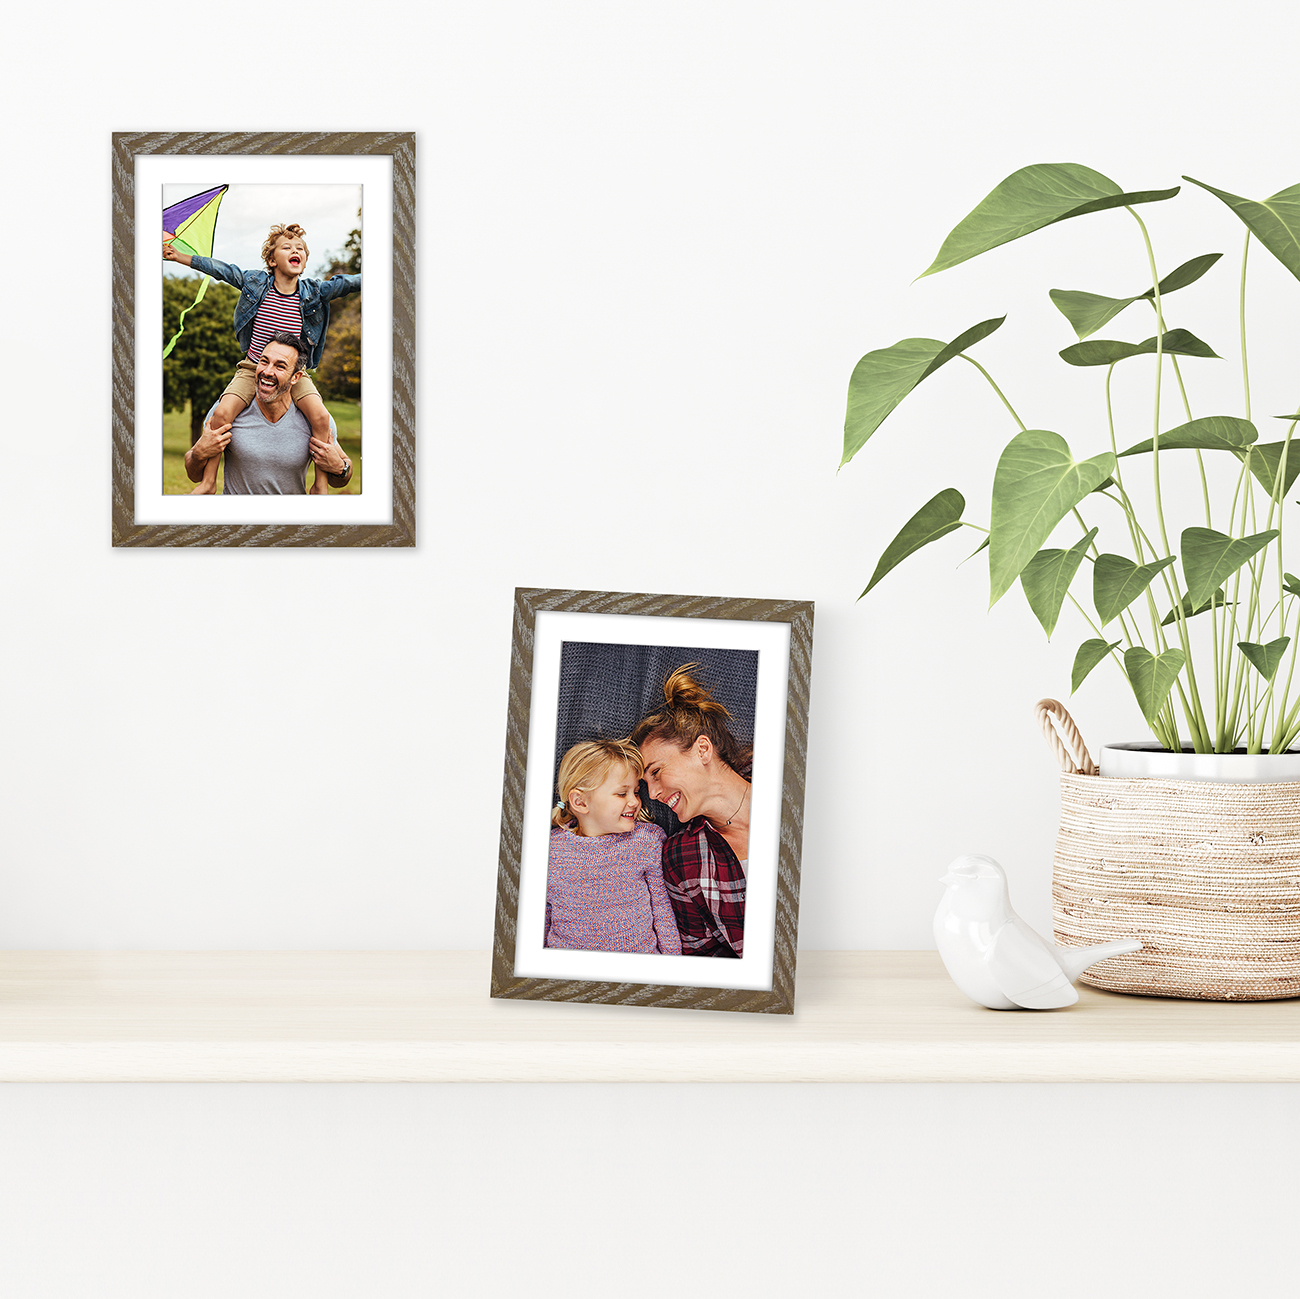 miniature 18 - Americanflat Thin Picture Frame 5x7 8x10 11x14 8.5x11 Wall Tabletop Pick Color